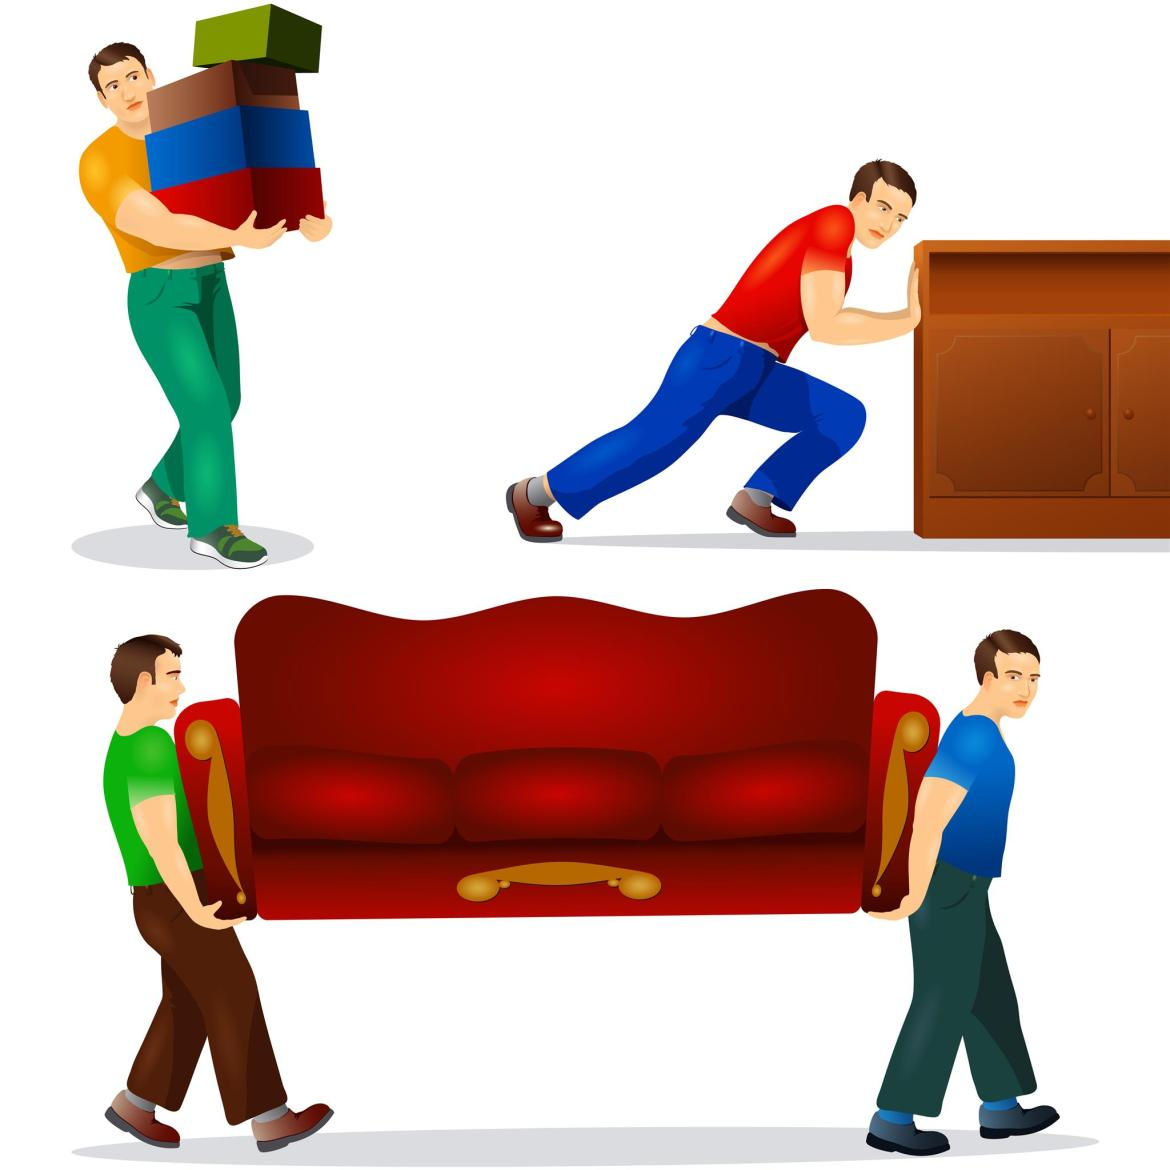 Furniture removal in Loxahatchee Groves FL